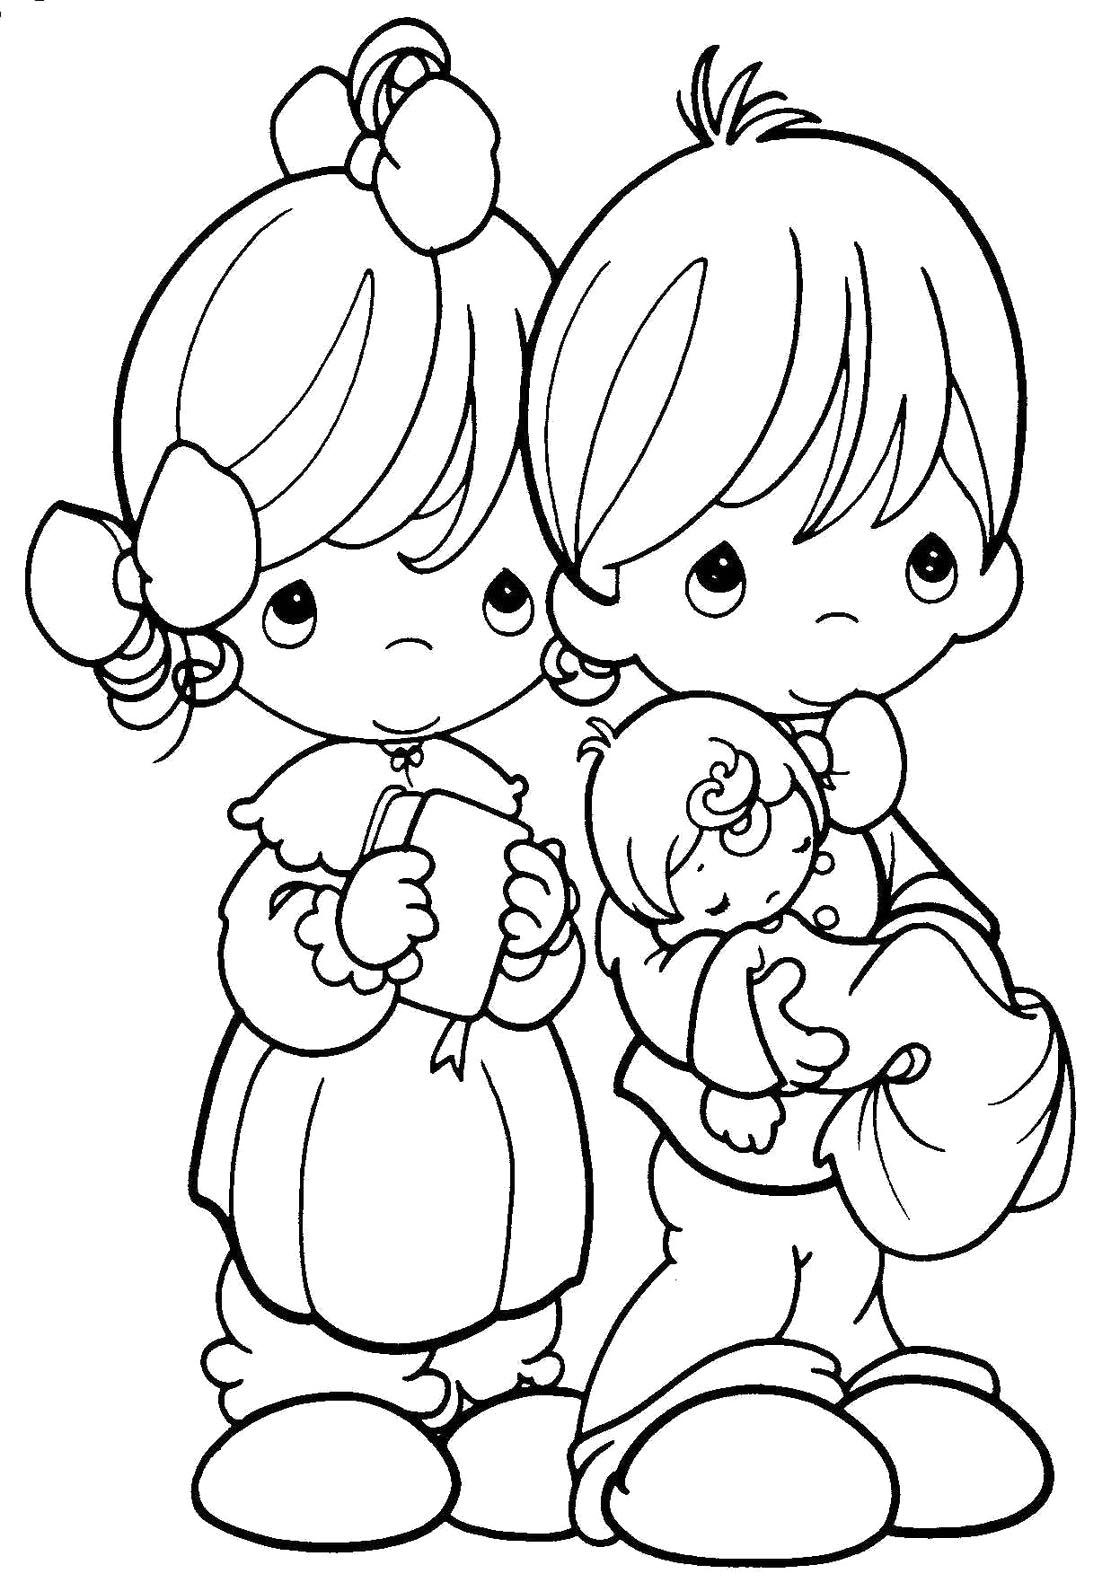 Precious moments are always happy always coloring pages ระบายส